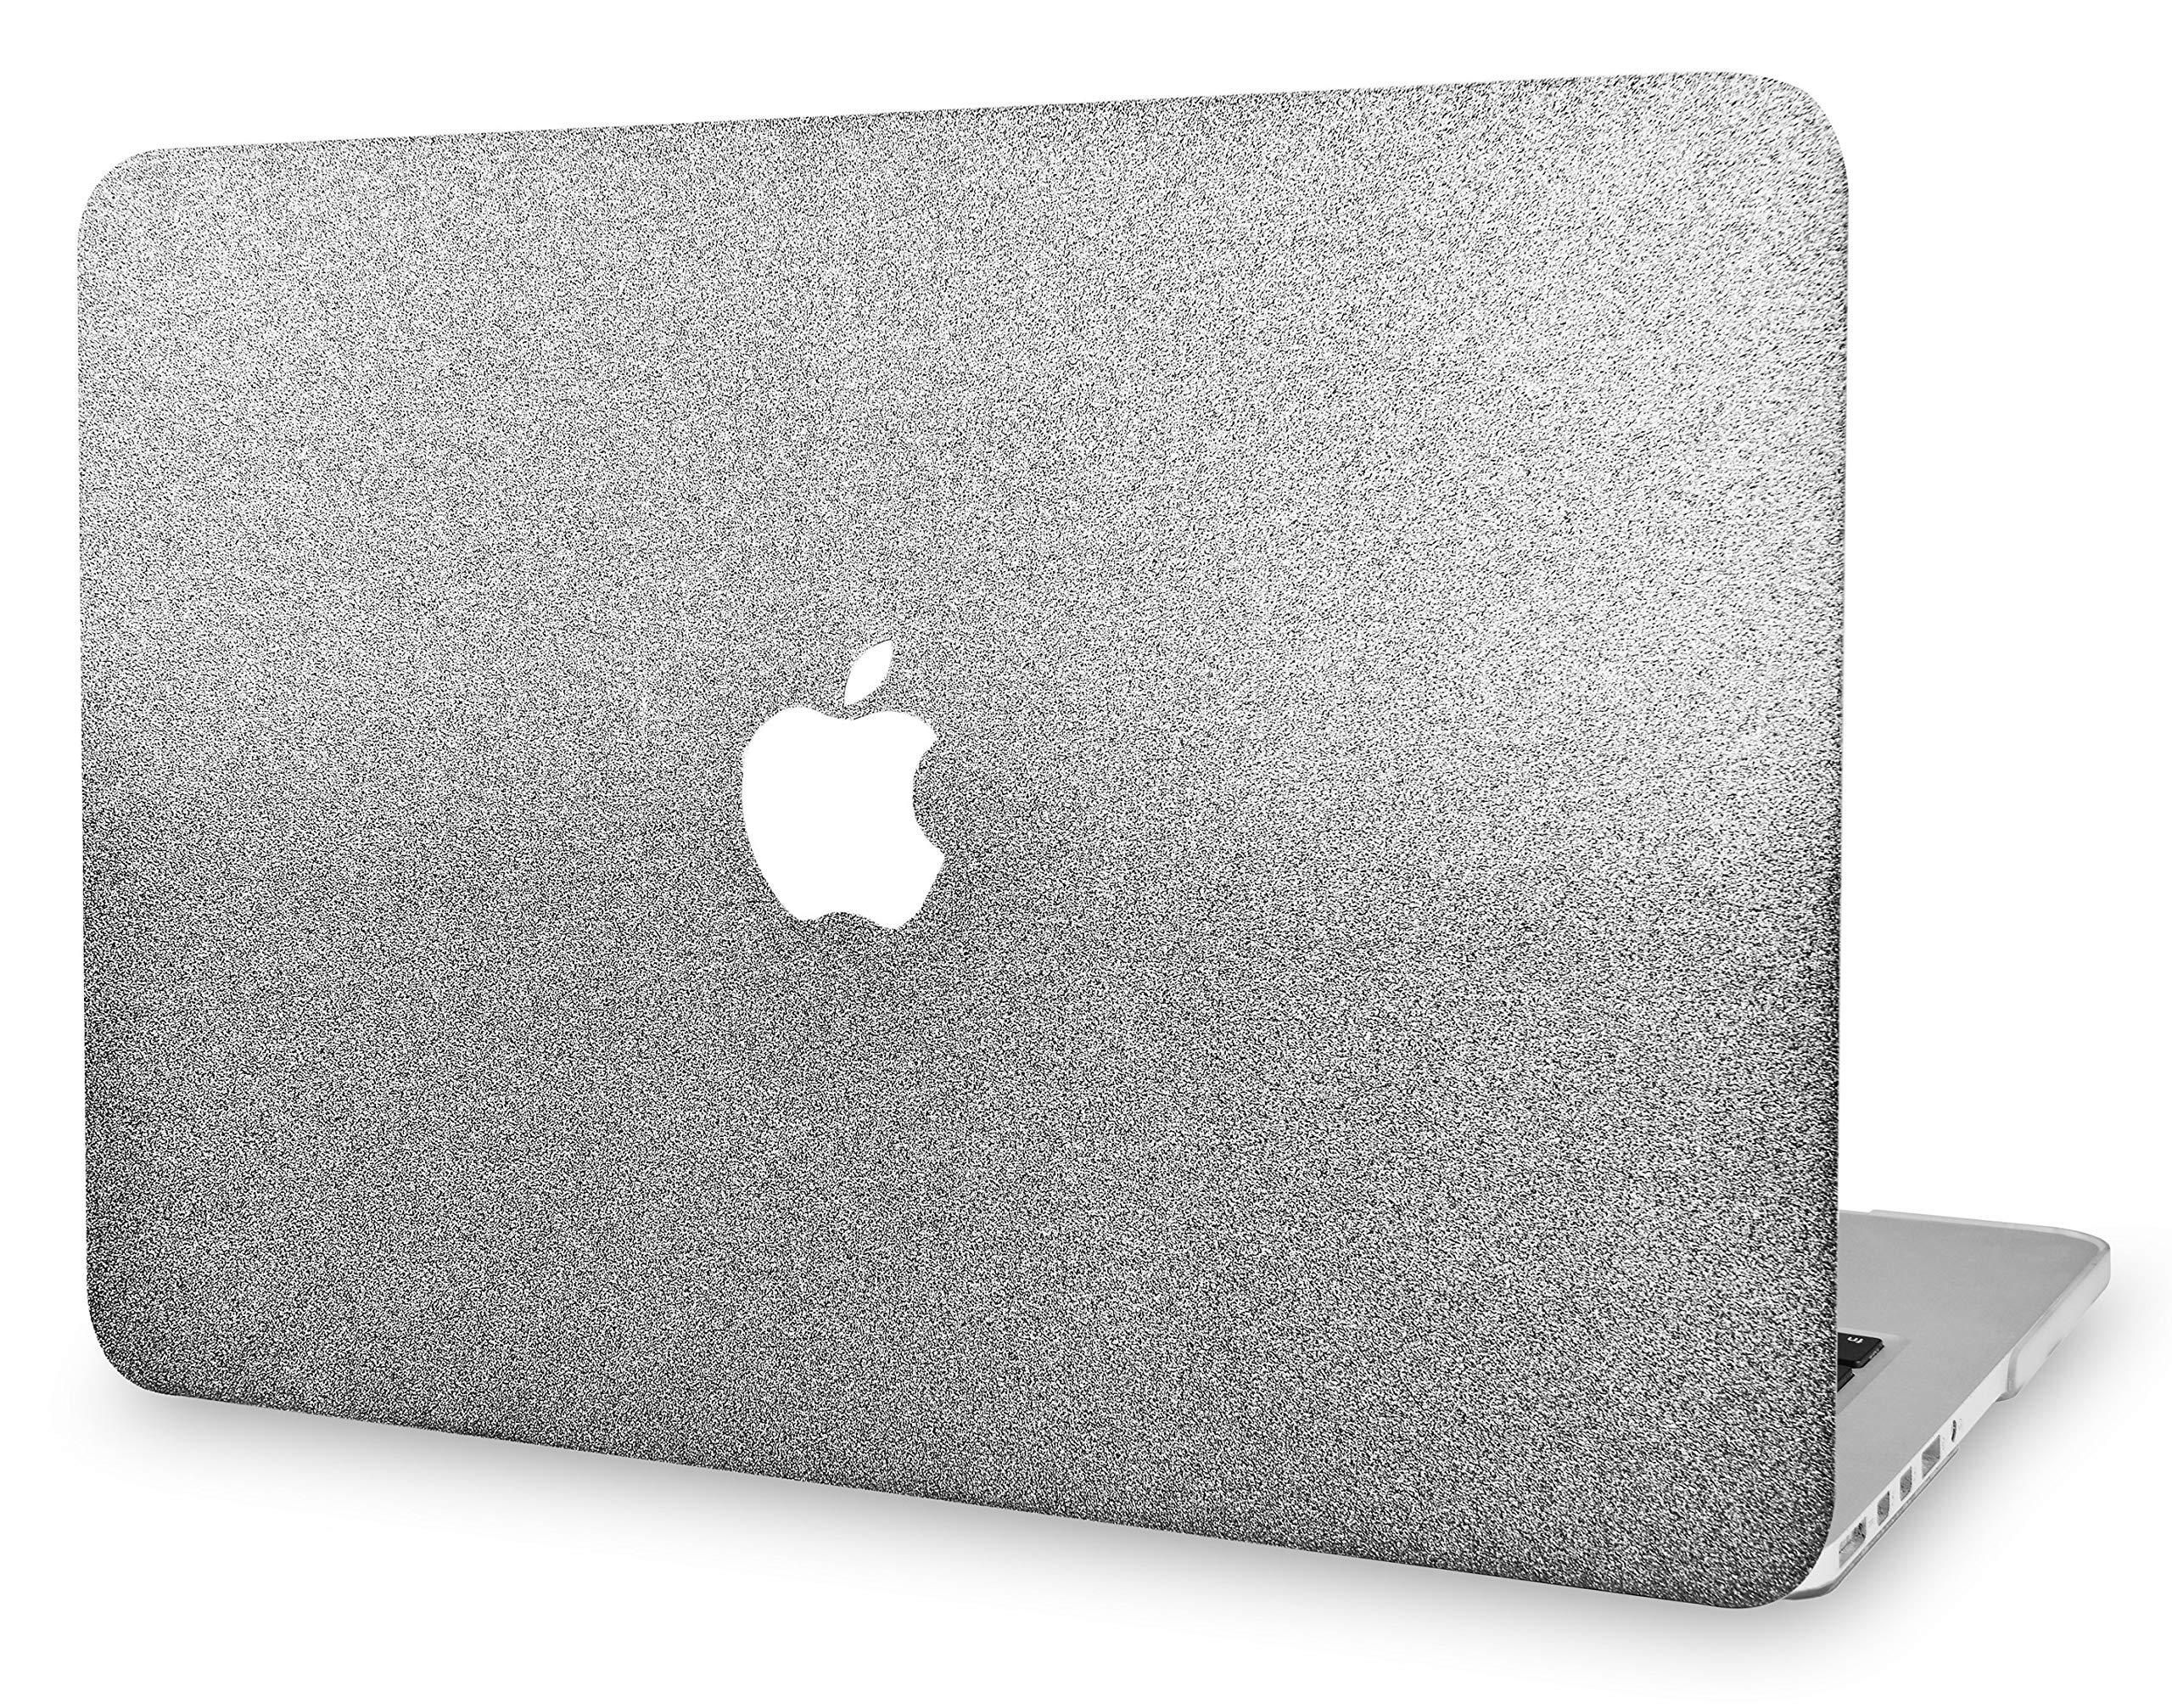 """KECC Laptop Case for Old MacBook Pro 13"""" Retina (-2015) Plastic Hard Shell Cover A1502 / A1425 (Silver Grey Sparkling)"""